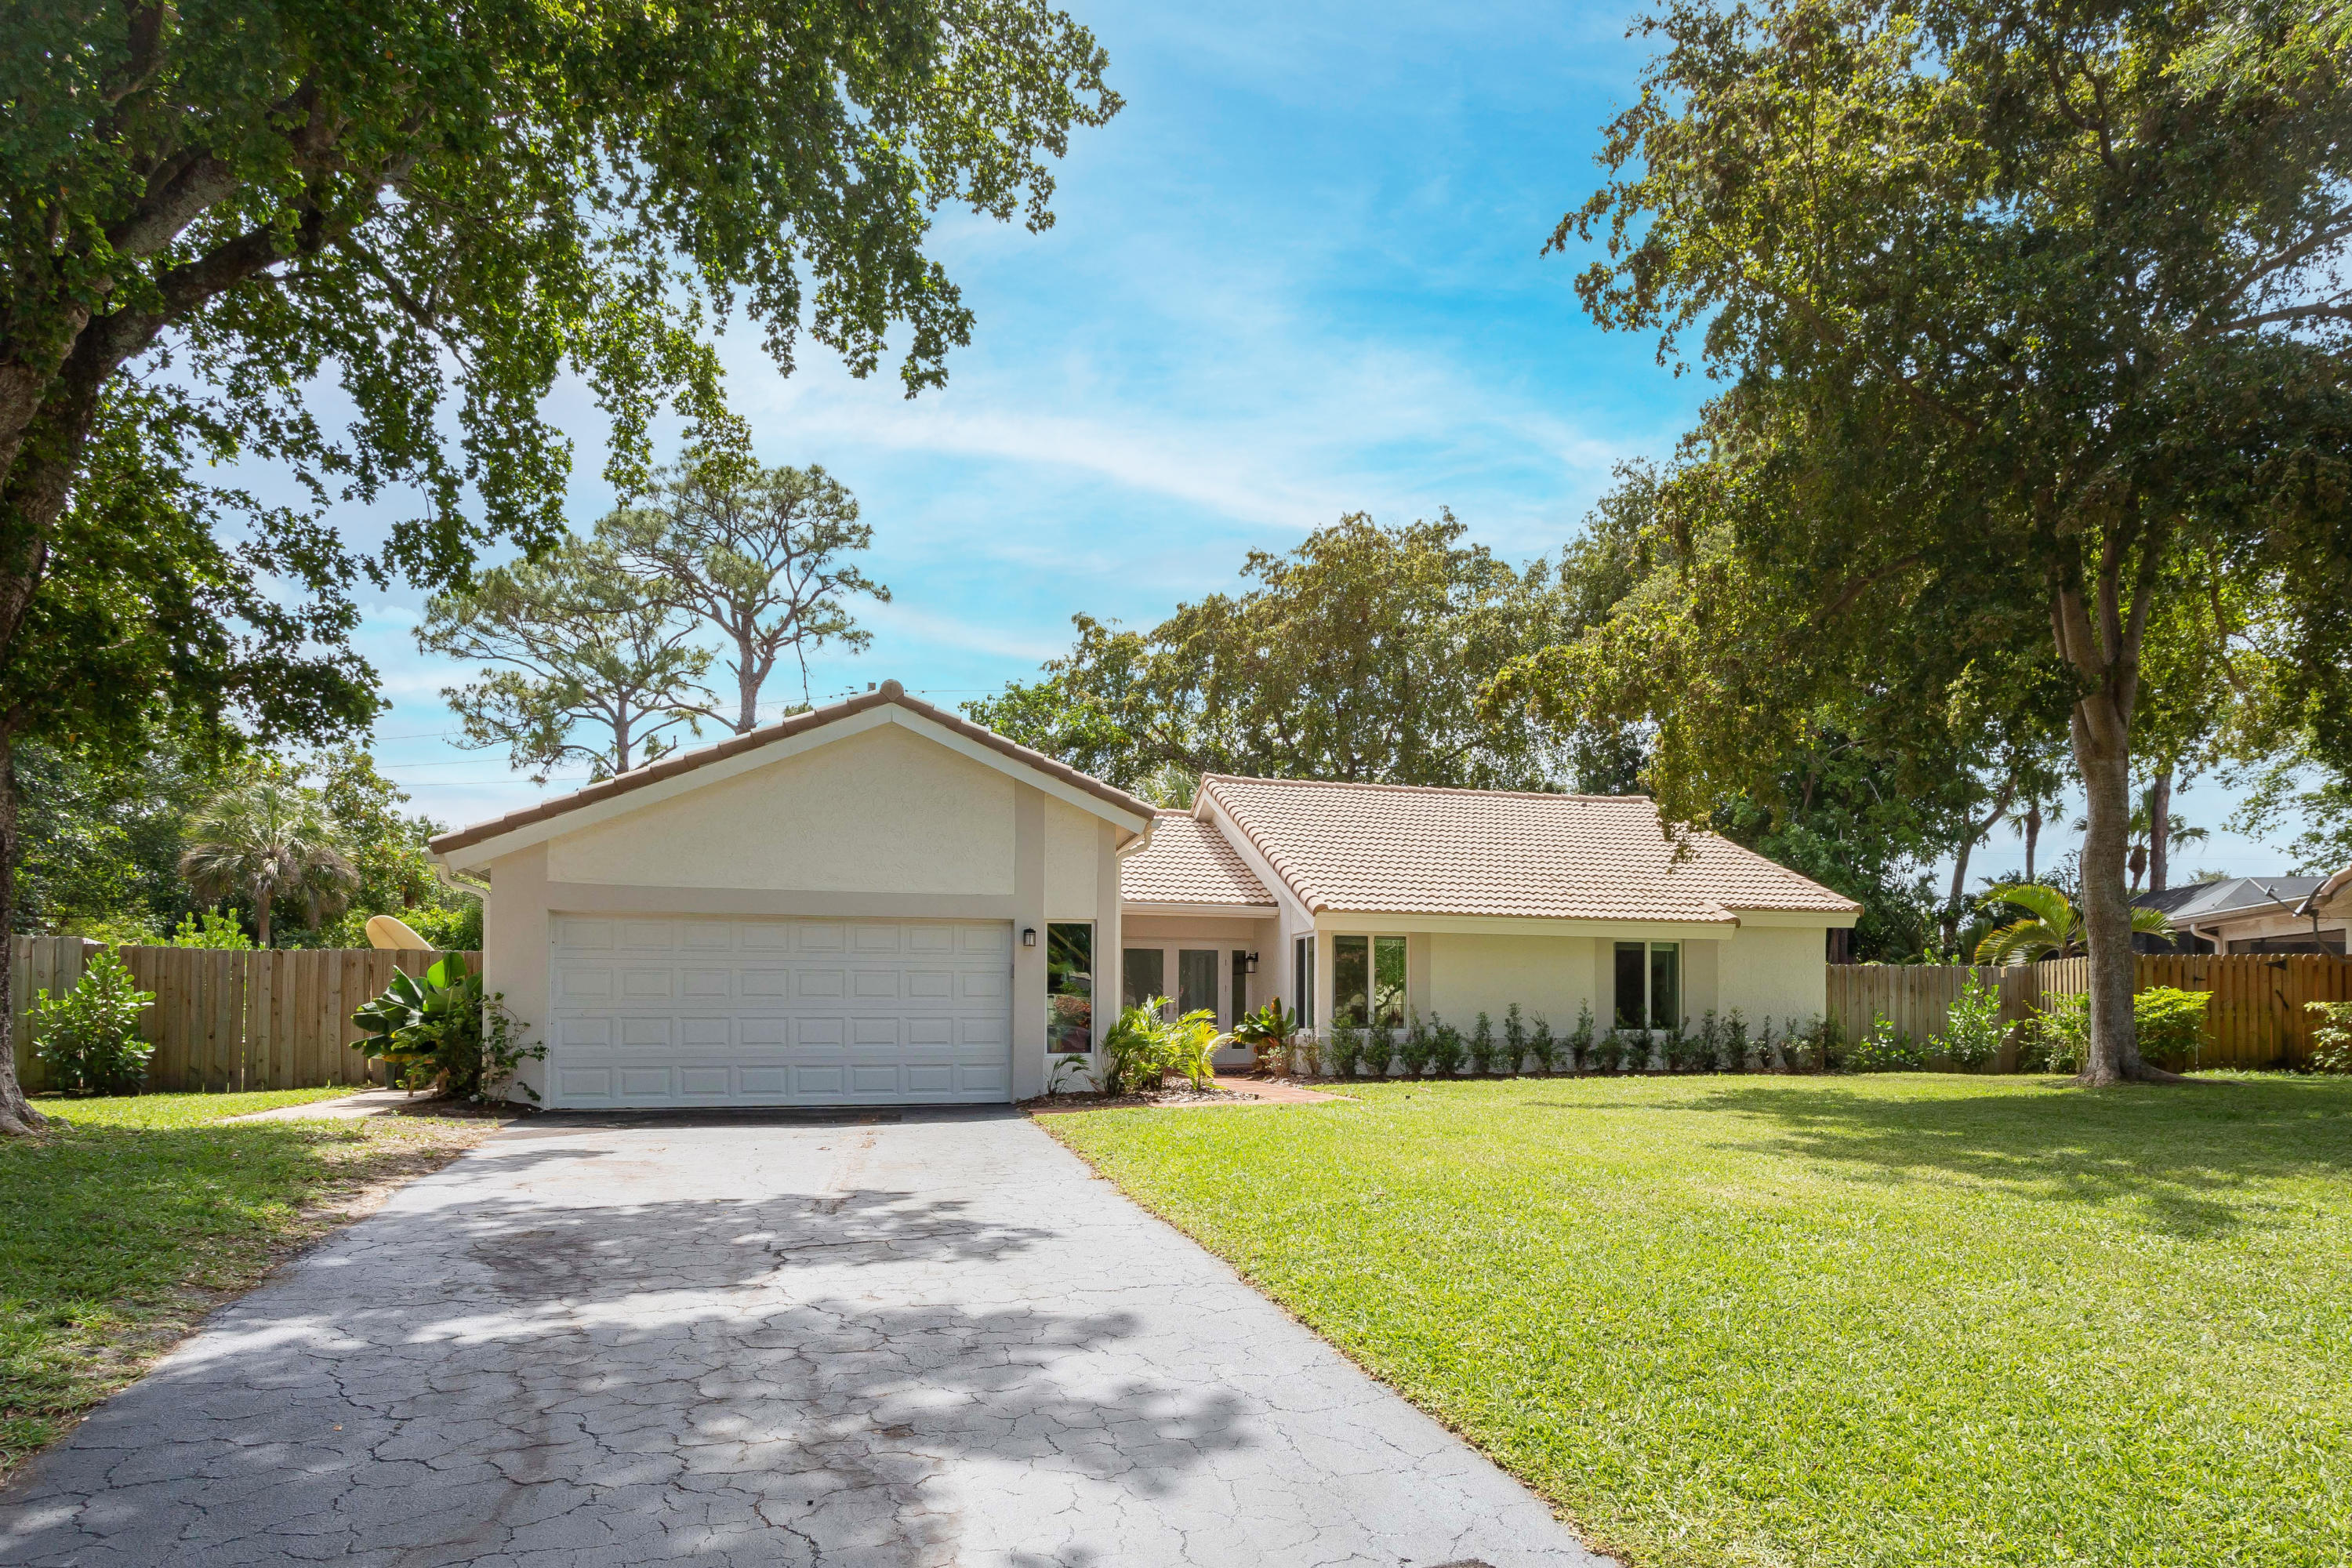 2889 24th Court - 3/2 in TIMBERCREEK